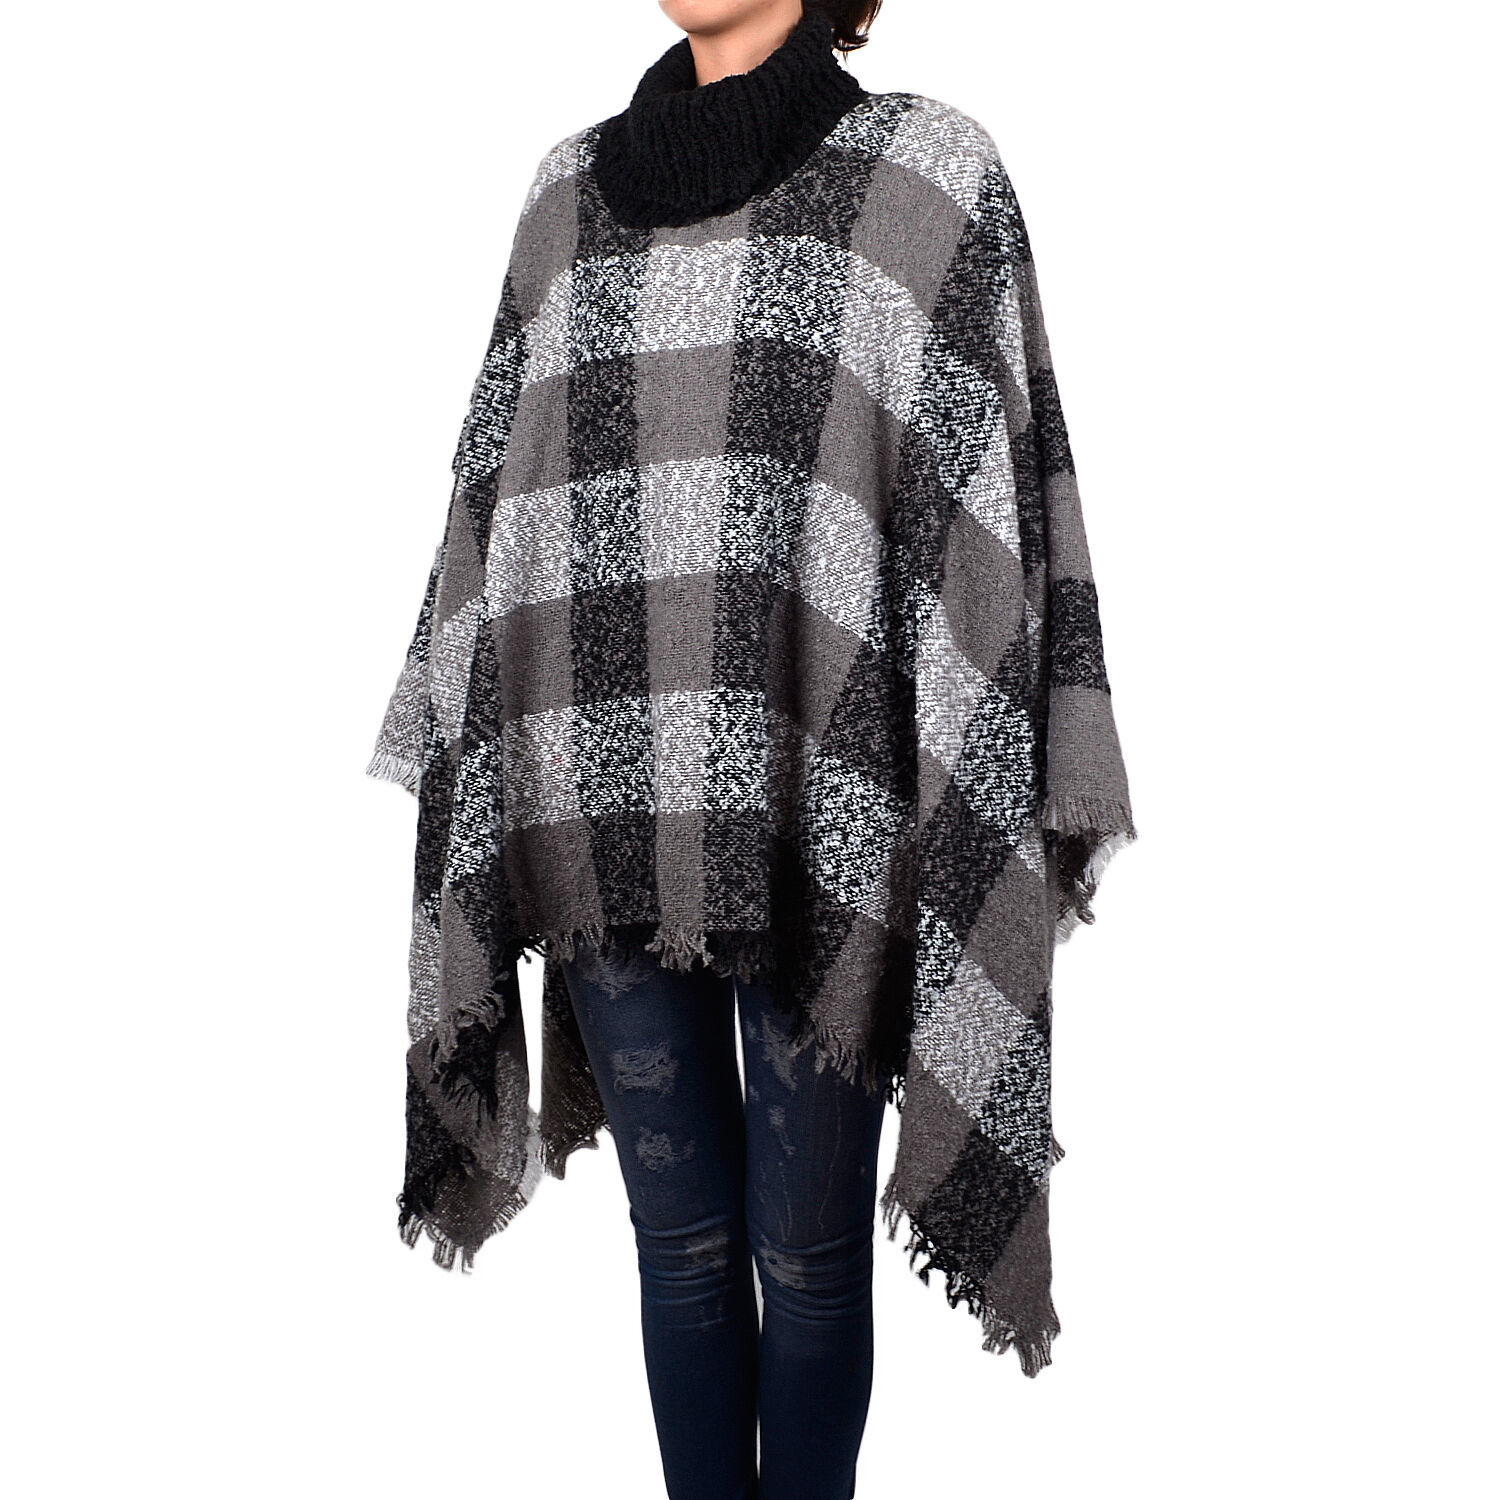 Primary image for Women's Fashion Plaids & Checks Knitted Tassel Shawl Poncho High Neck